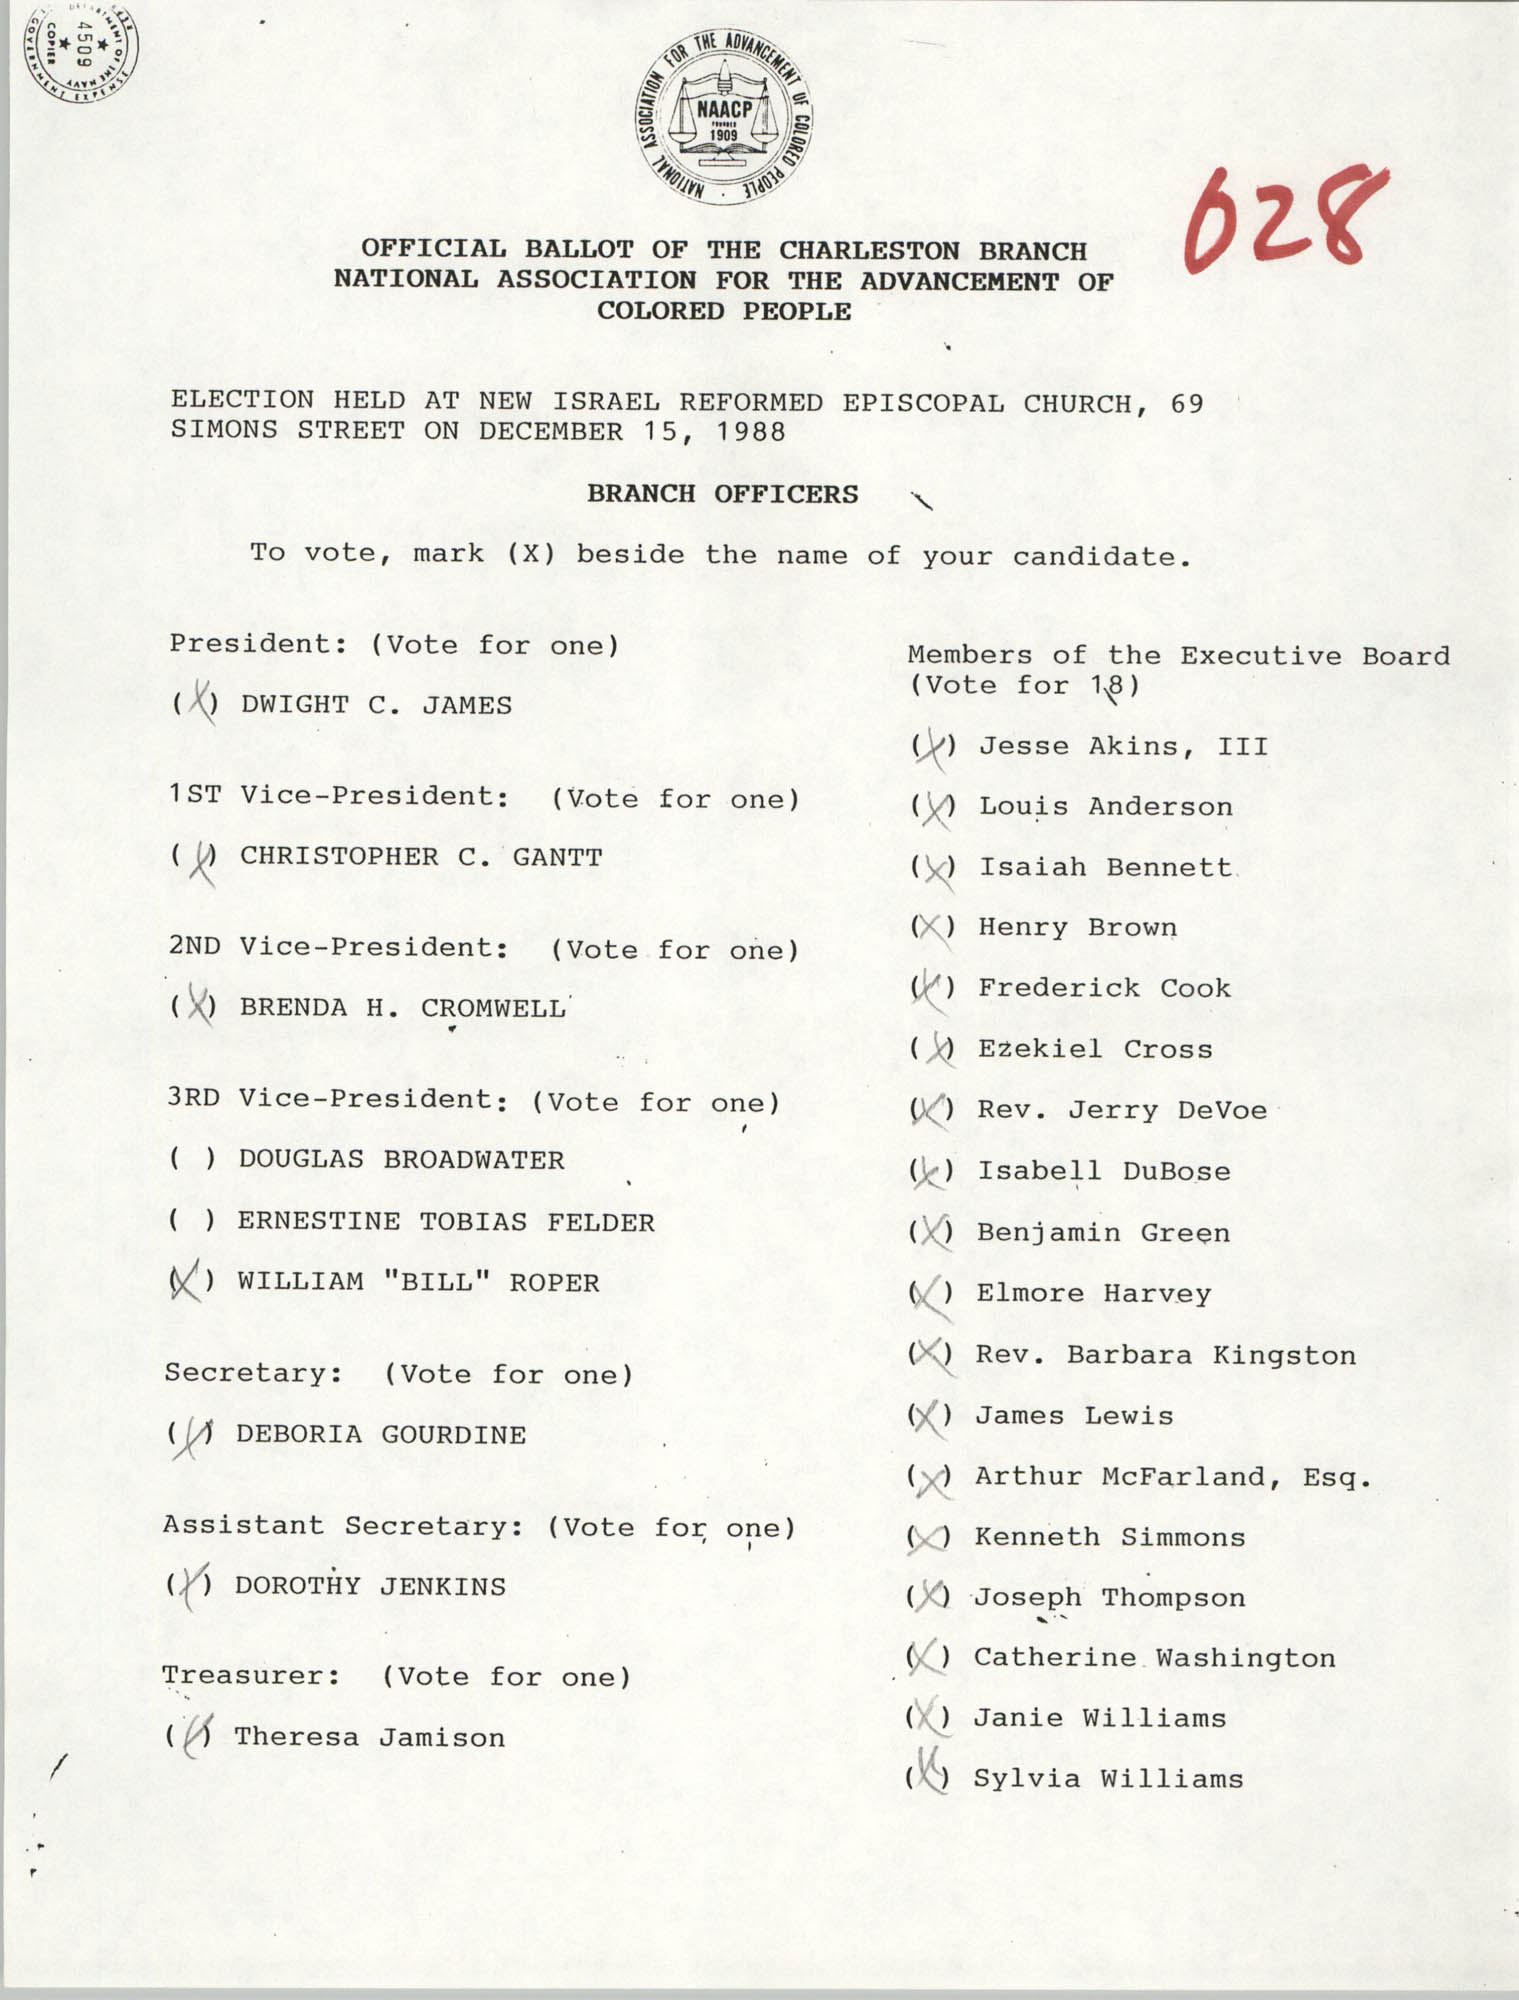 Official Ballot of the Charleston Branch of the NAACP, 028